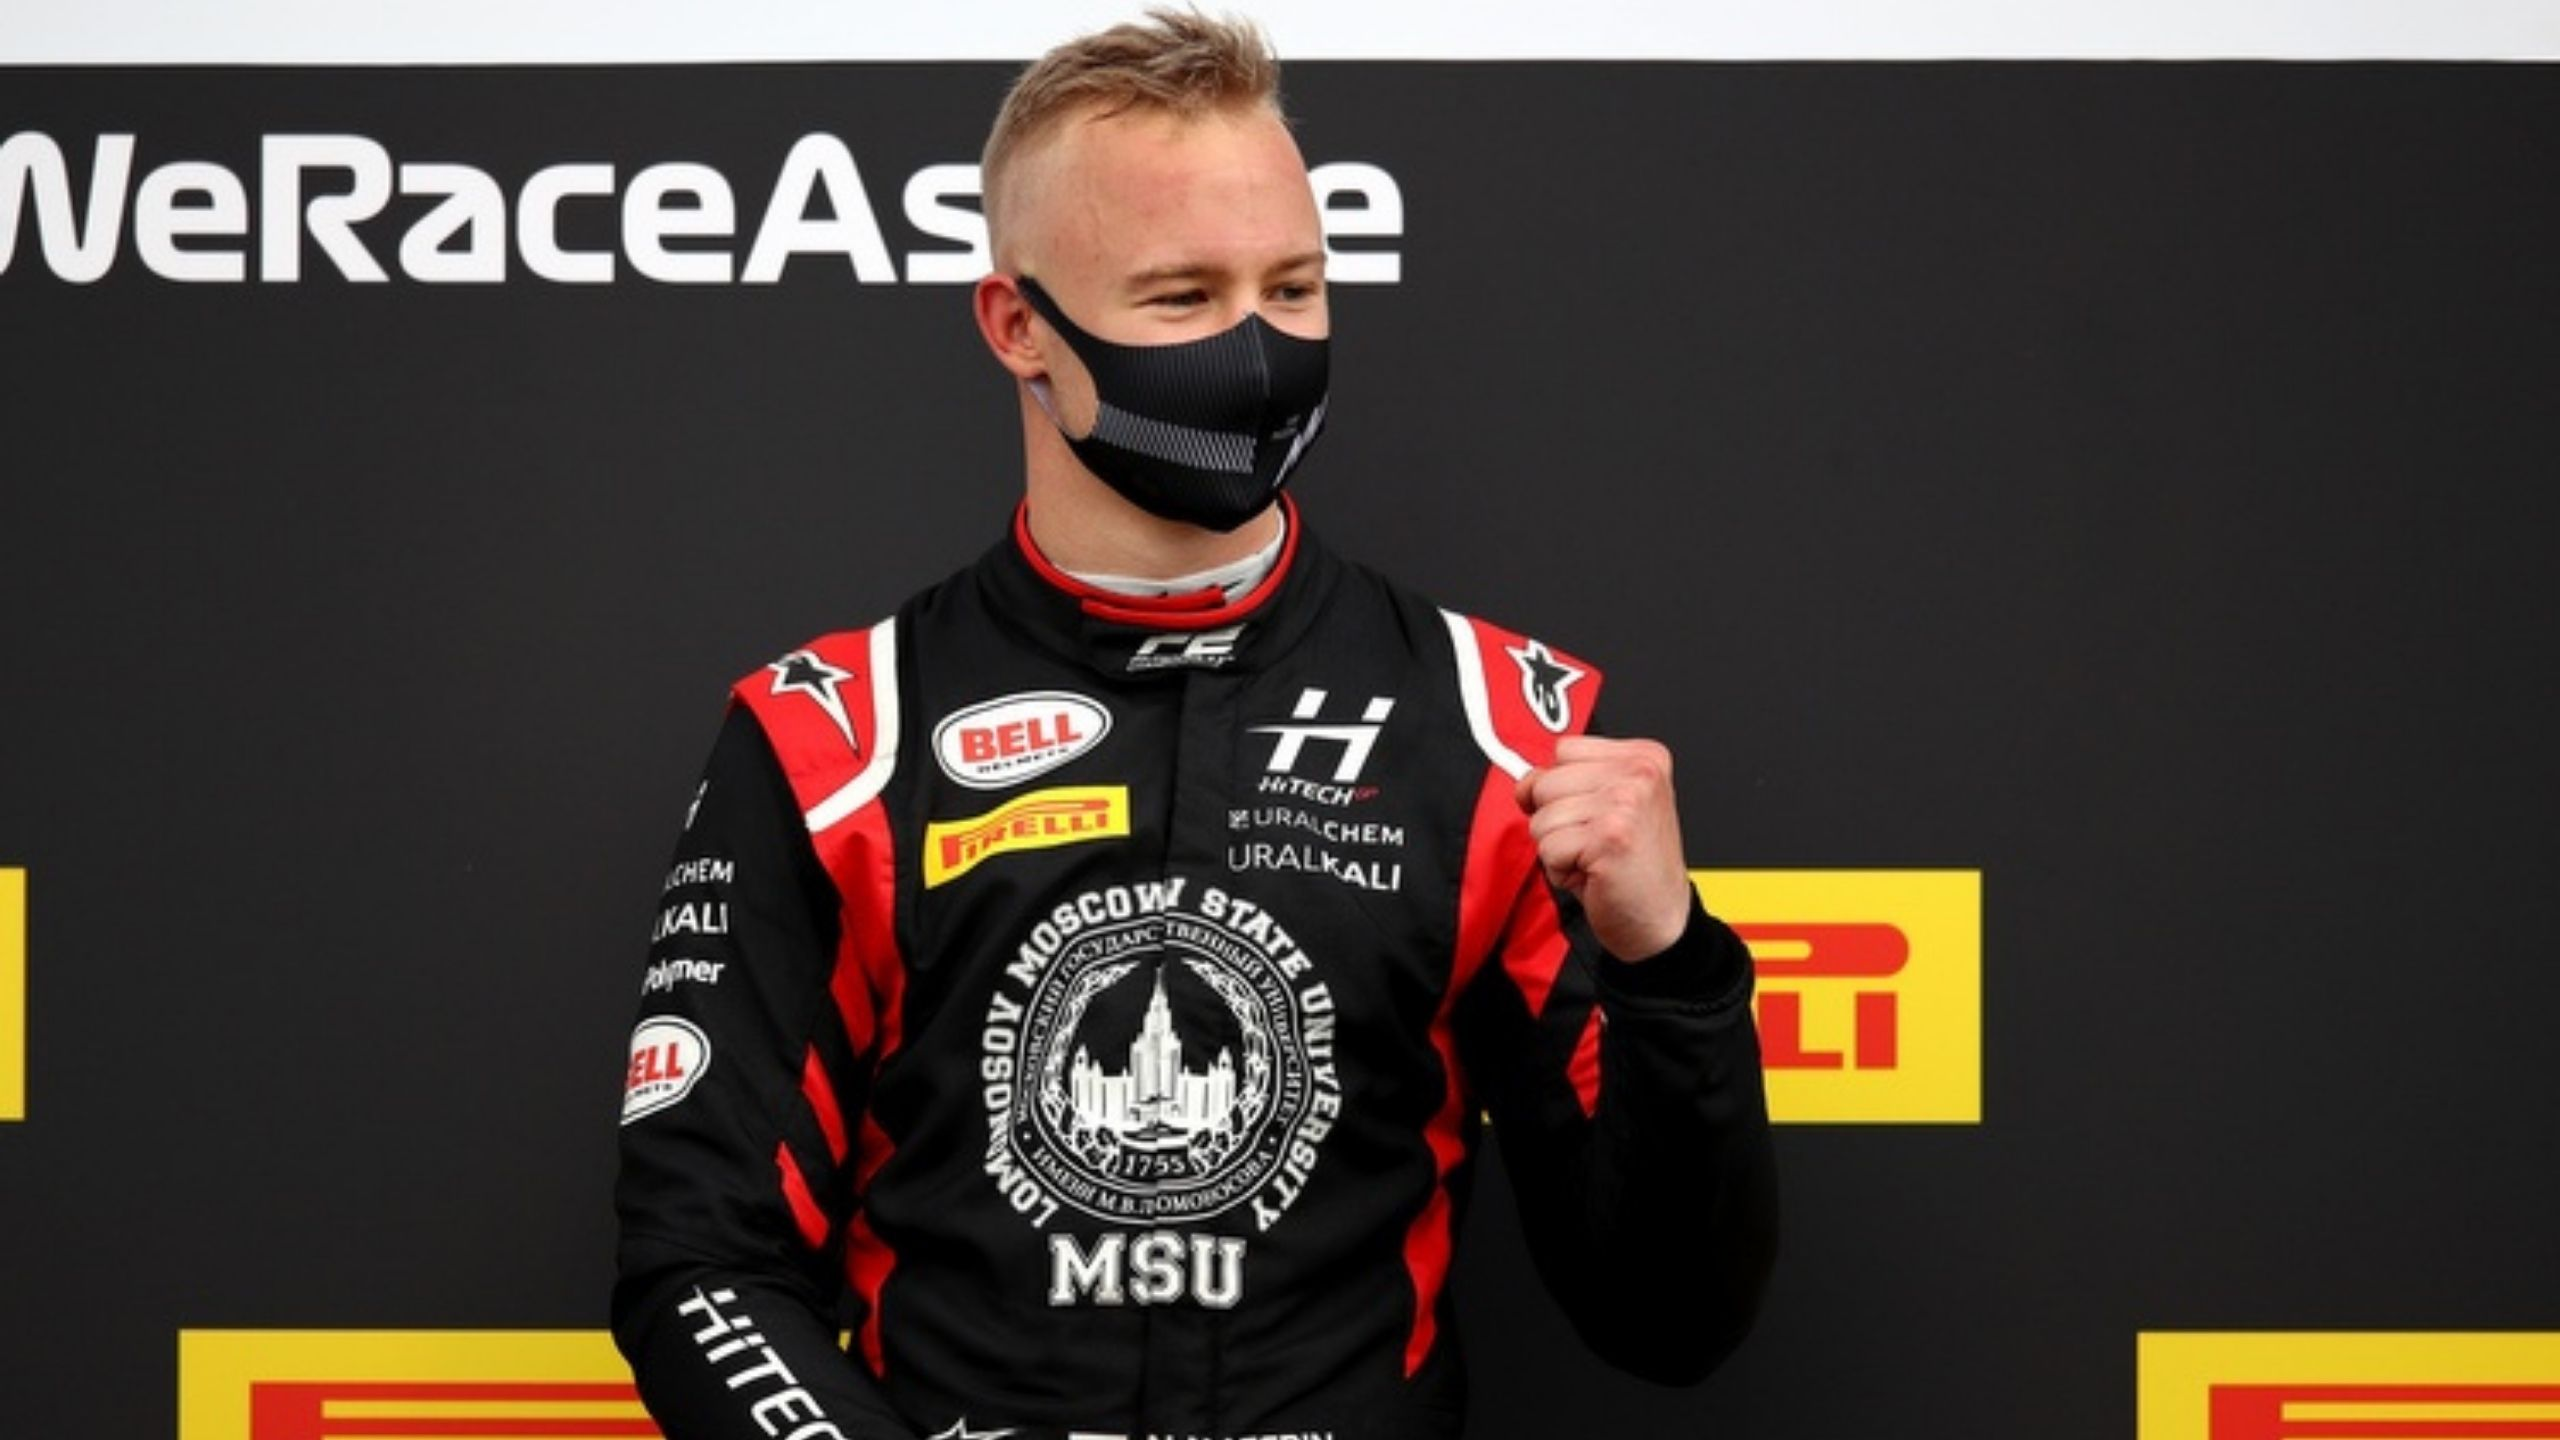 """""""I have to hold myself to a higher standard as a Formula 1 driver"""" - Nikita Mazepin of Haas lands in hot soup after disgusting video on social media"""